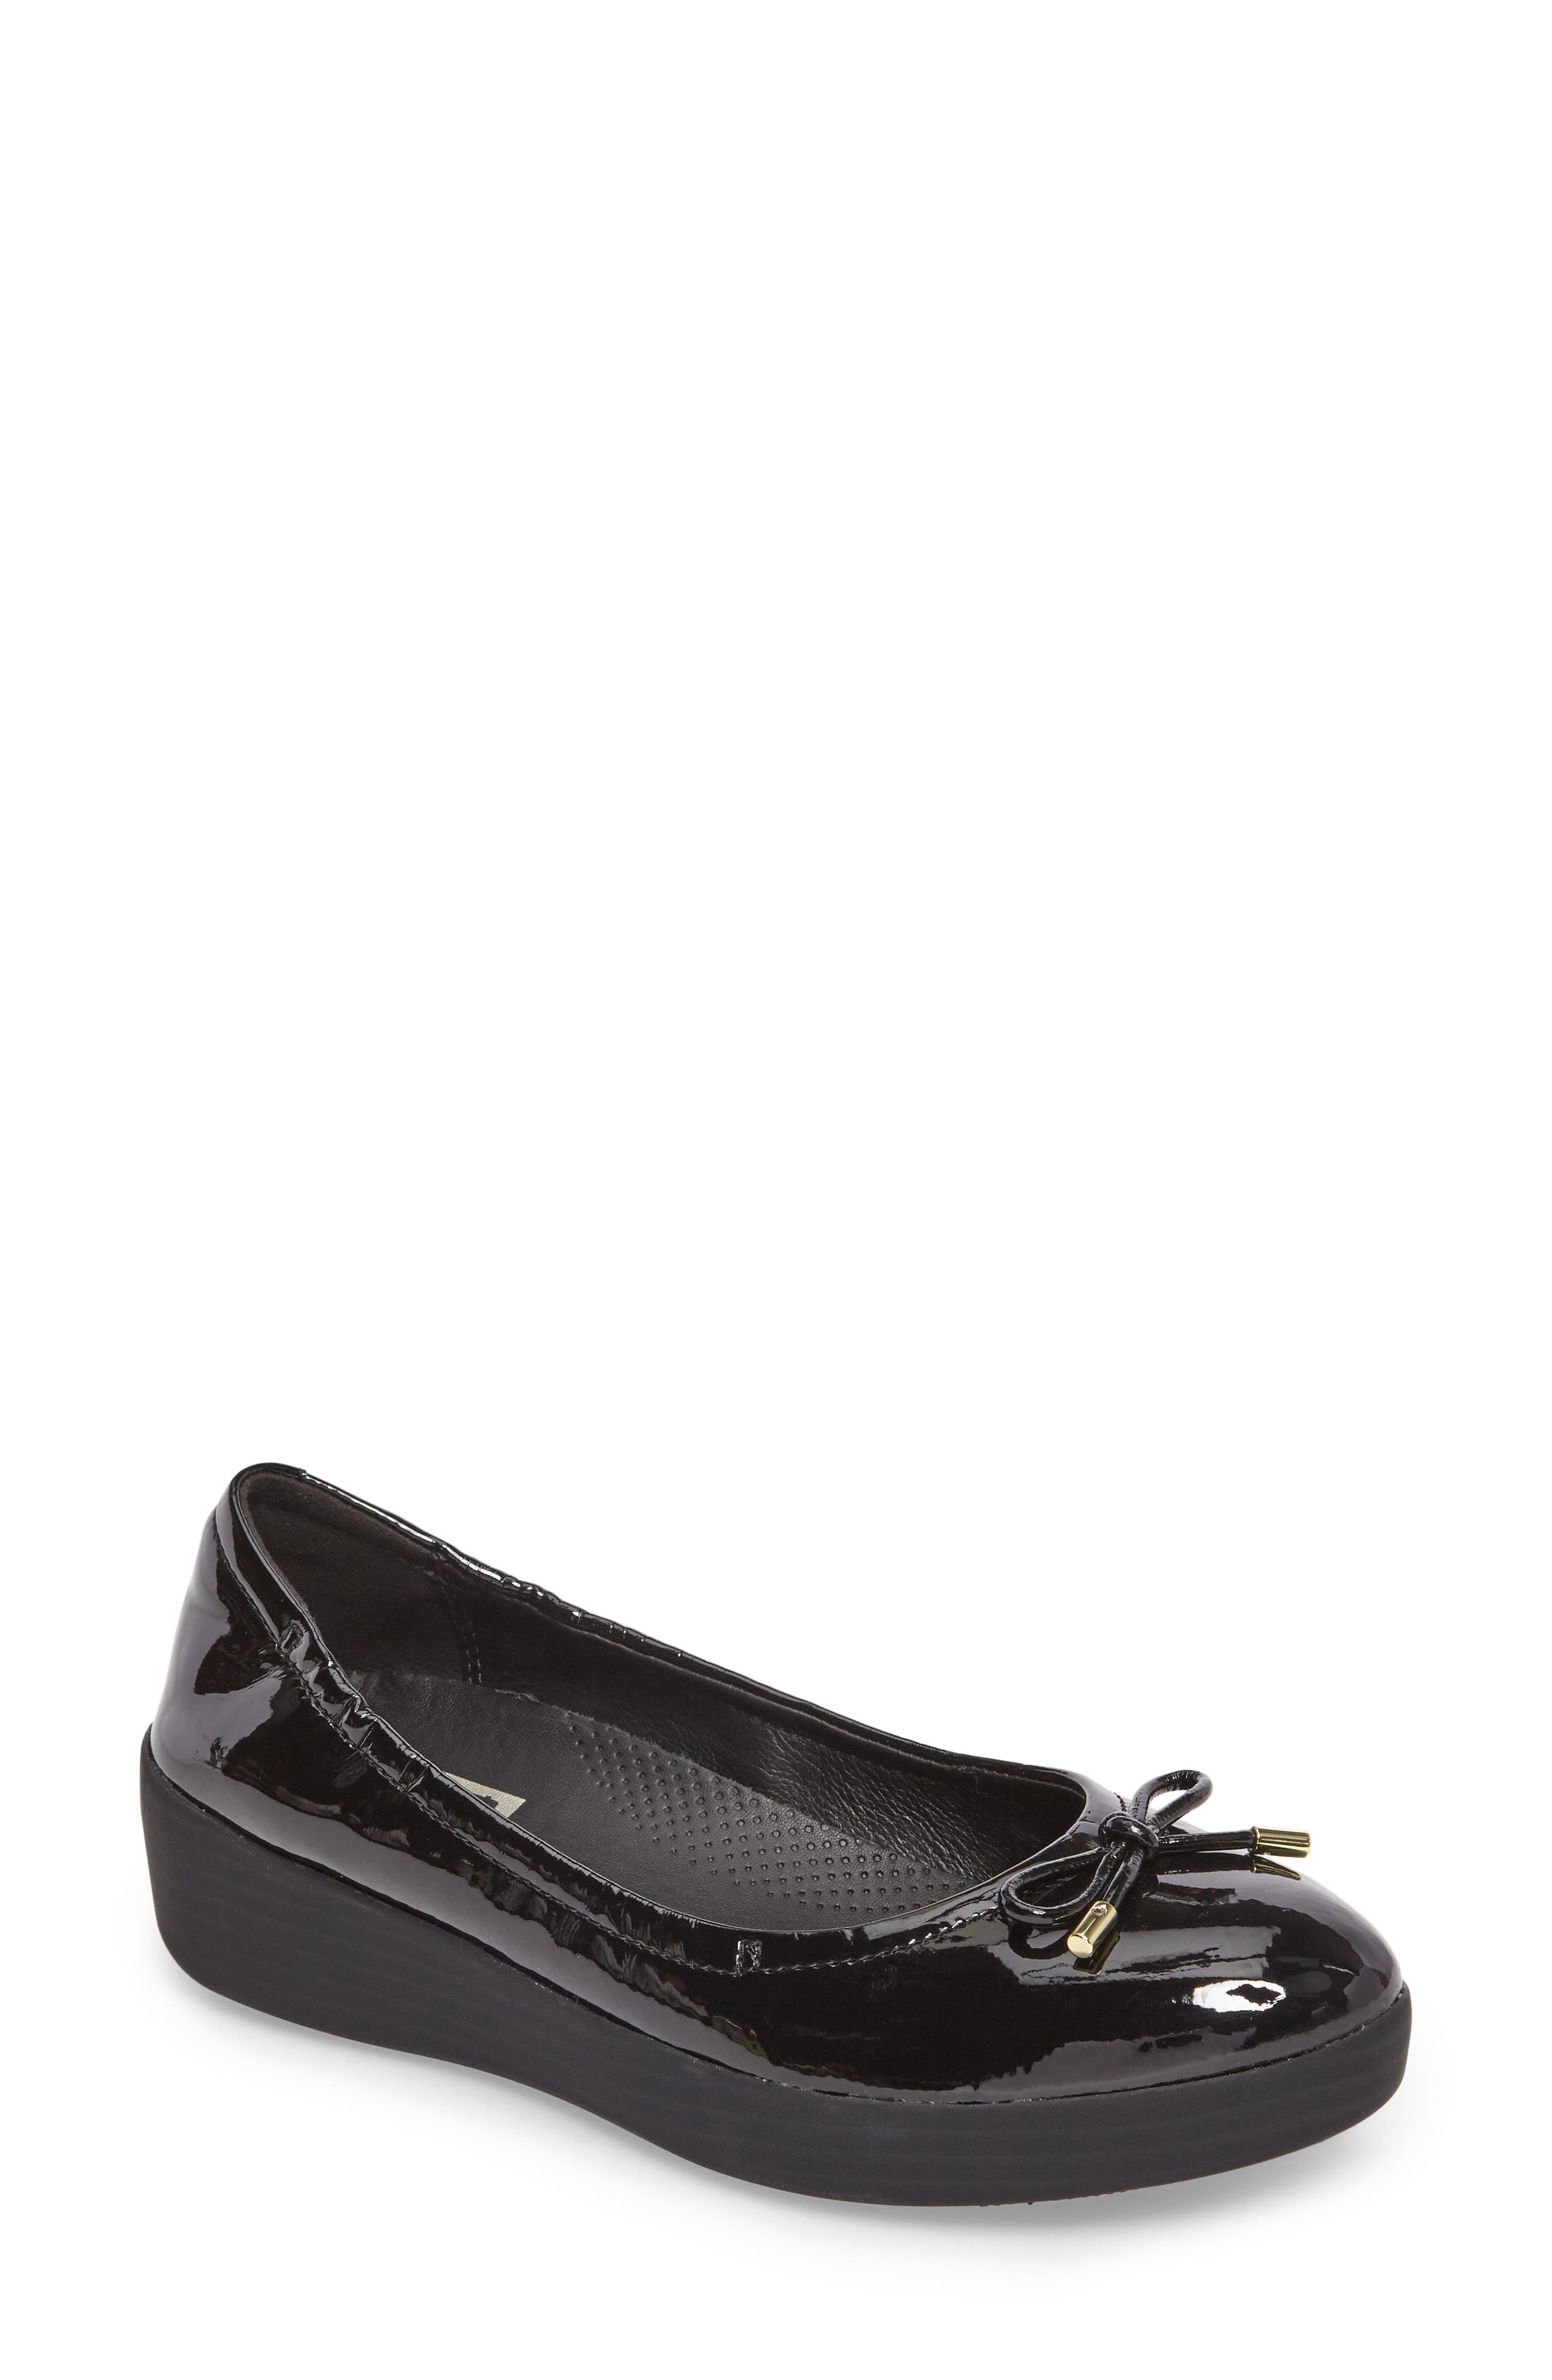 SuperBendy<sup>™</sup> Ballet Flat,                         Main,                         color, Black Faux Patent